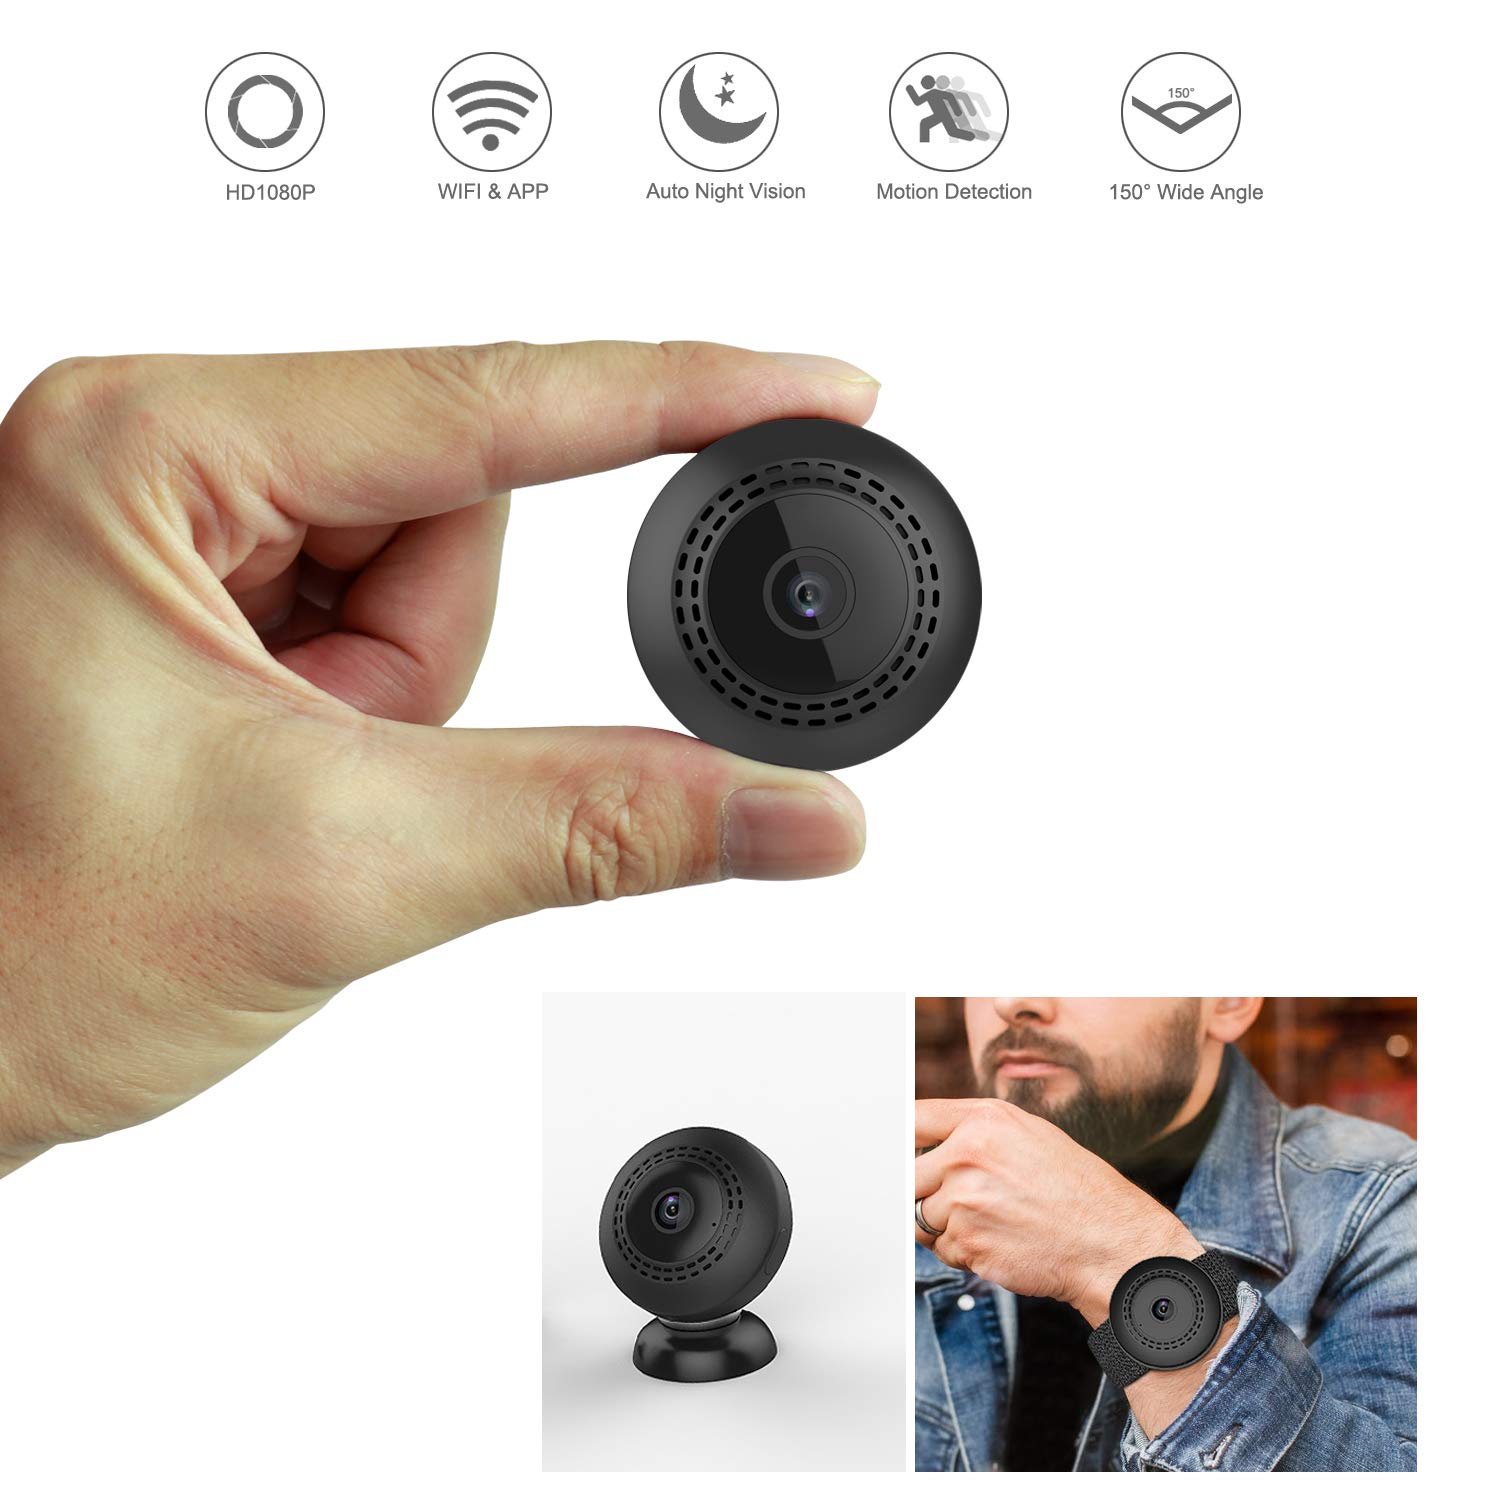 Aoboco Hidden Camera, Mini Spy Camera Wireless Hidden Small Nanny Cam 1080P WiFi Home Security Camera with iPhone Android Phone App Night Vision Motion Detection for Office, Apartment, Indoor Outdoor